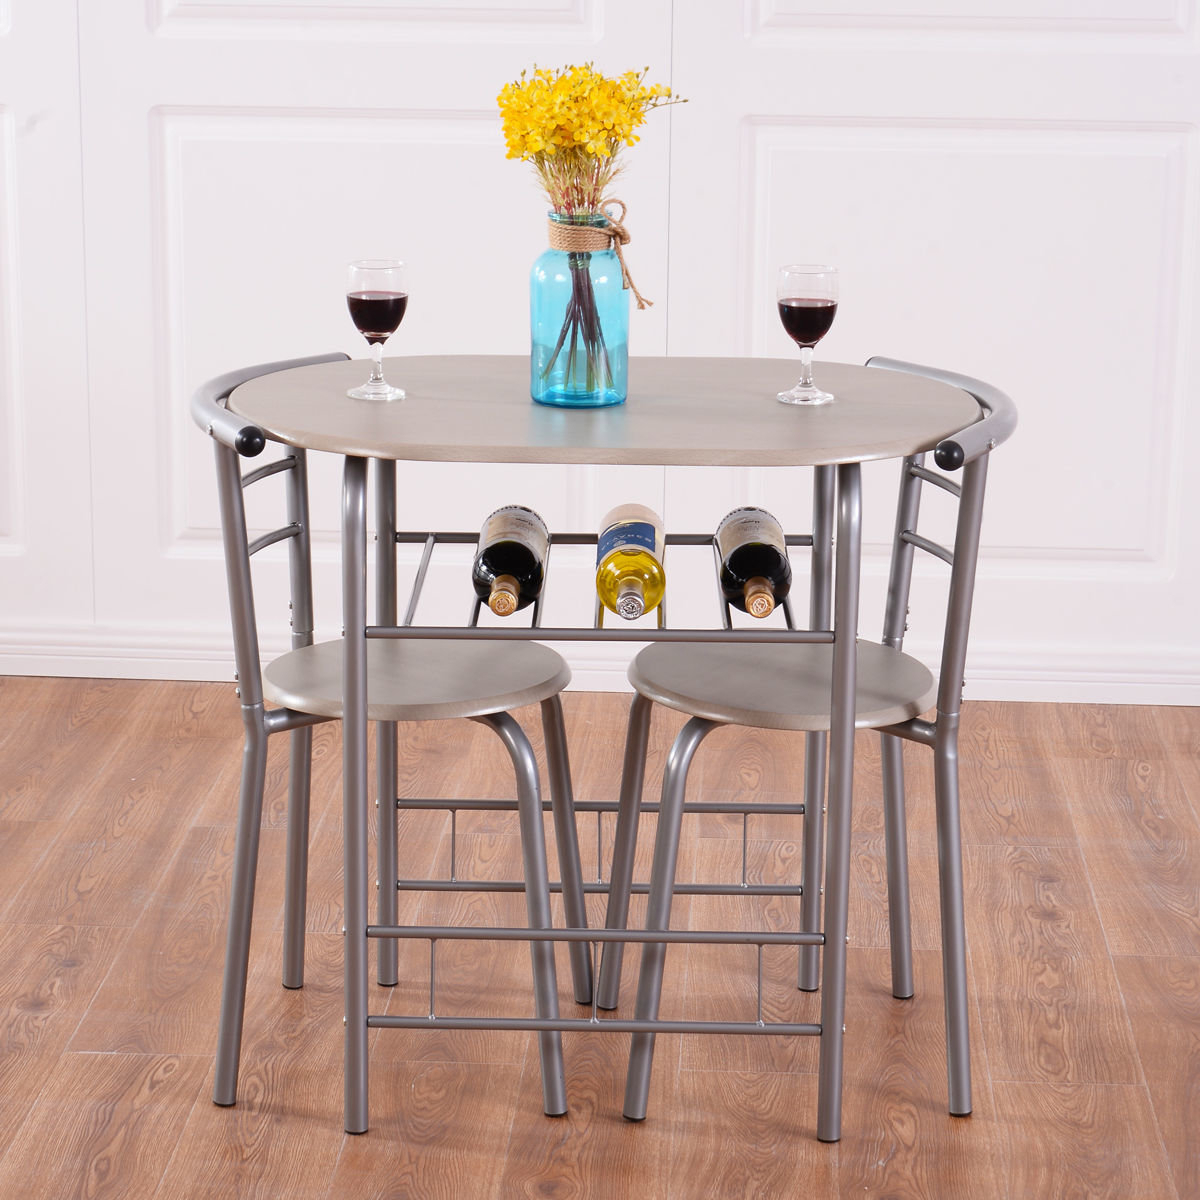 Wayfair Throughout Ligon 3 Piece Breakfast Nook Dining Sets (View 21 of 25)